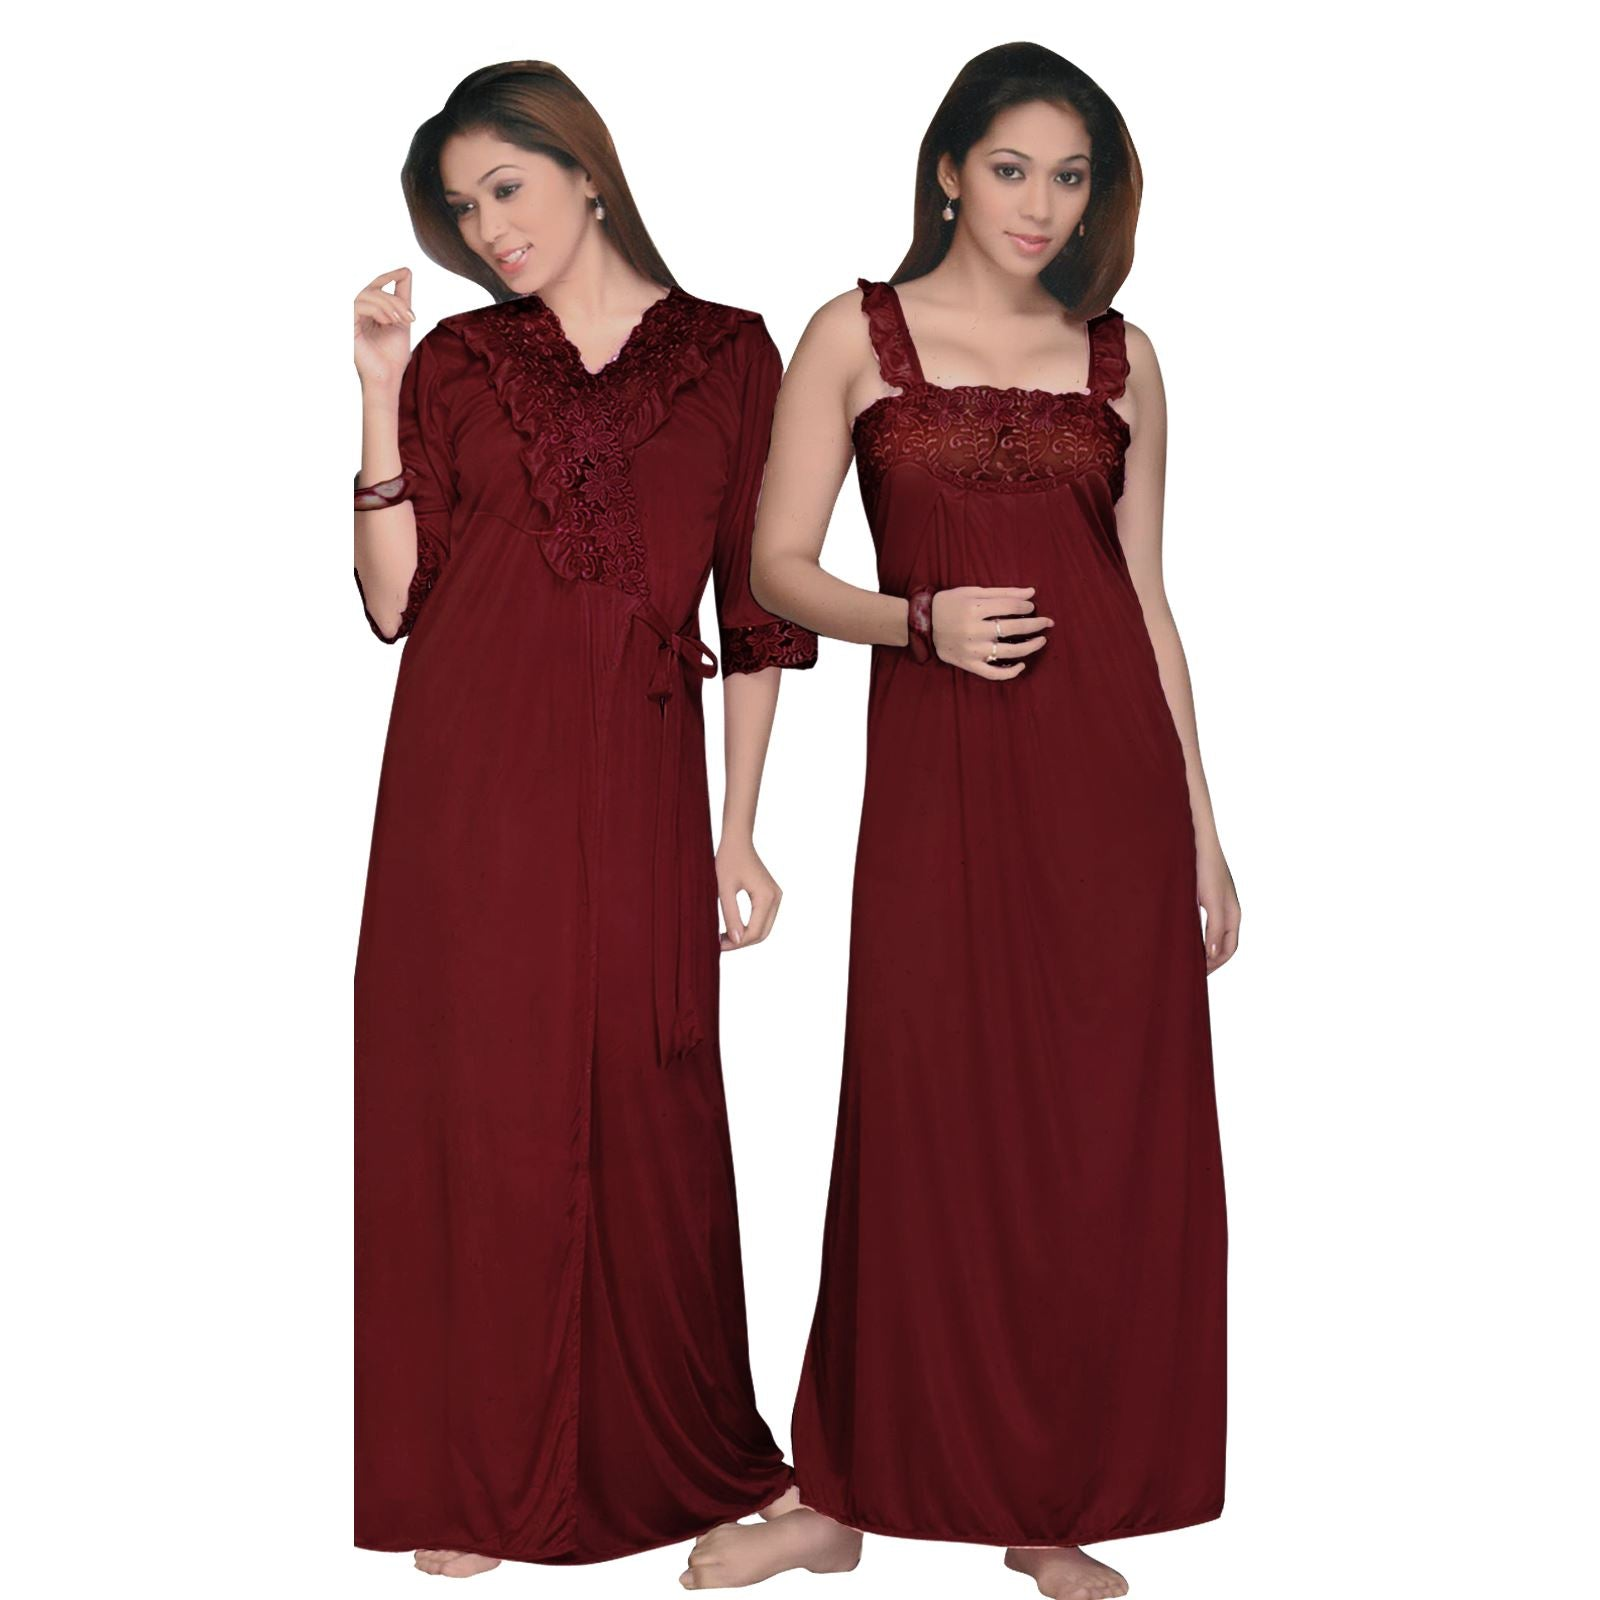 Satin 2 Pcs Long Nightwear Set Nighty With Robe [colour]- Hautie UK, #Nightfashion | #Underfashion